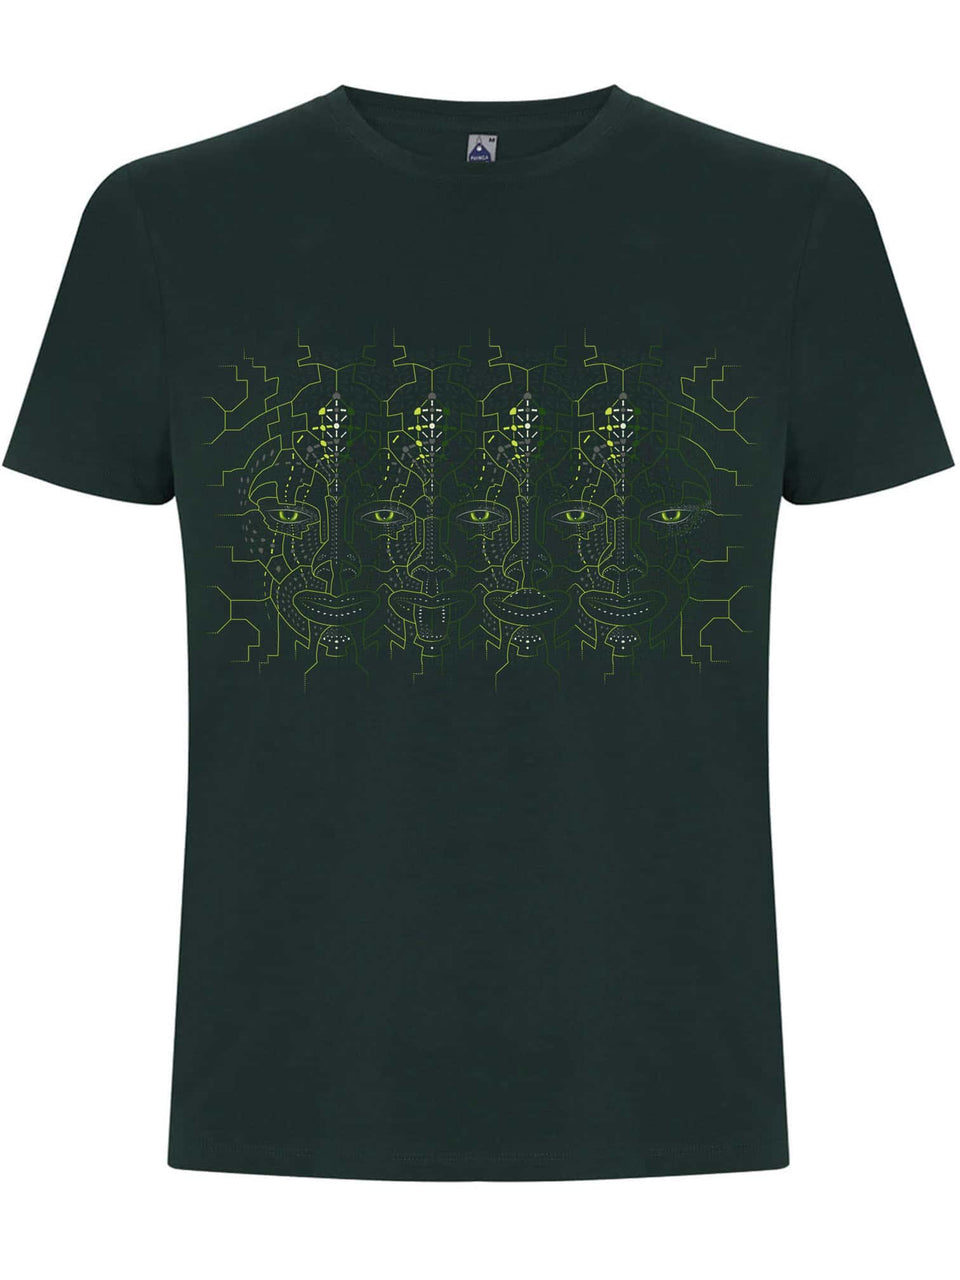 4th Dimension Made To Order Men T-Shirt - Bottle Green